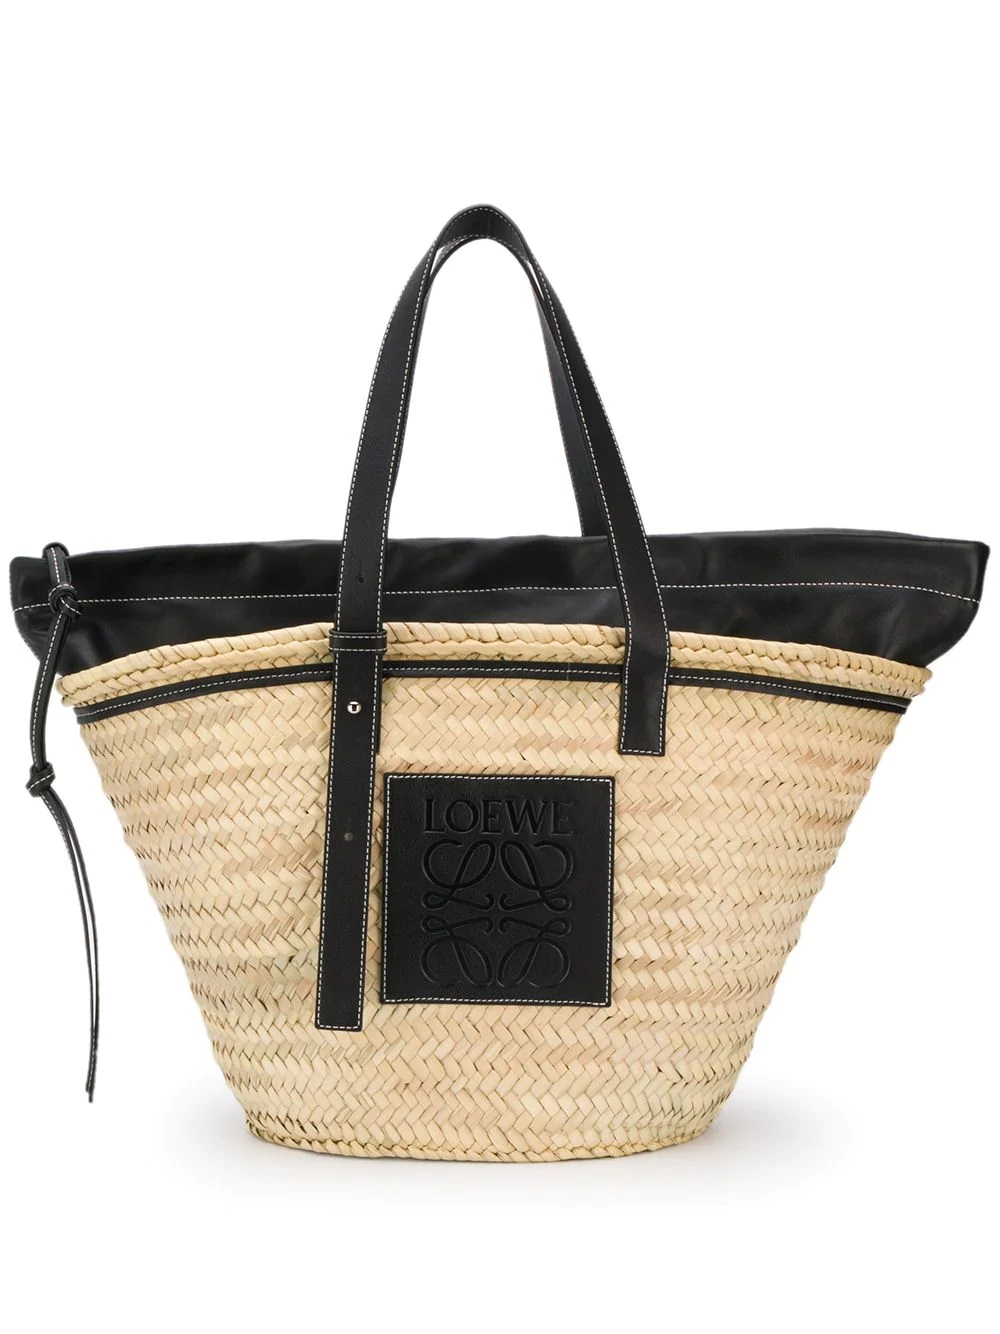 loewe-leather-paneled-straw-tote